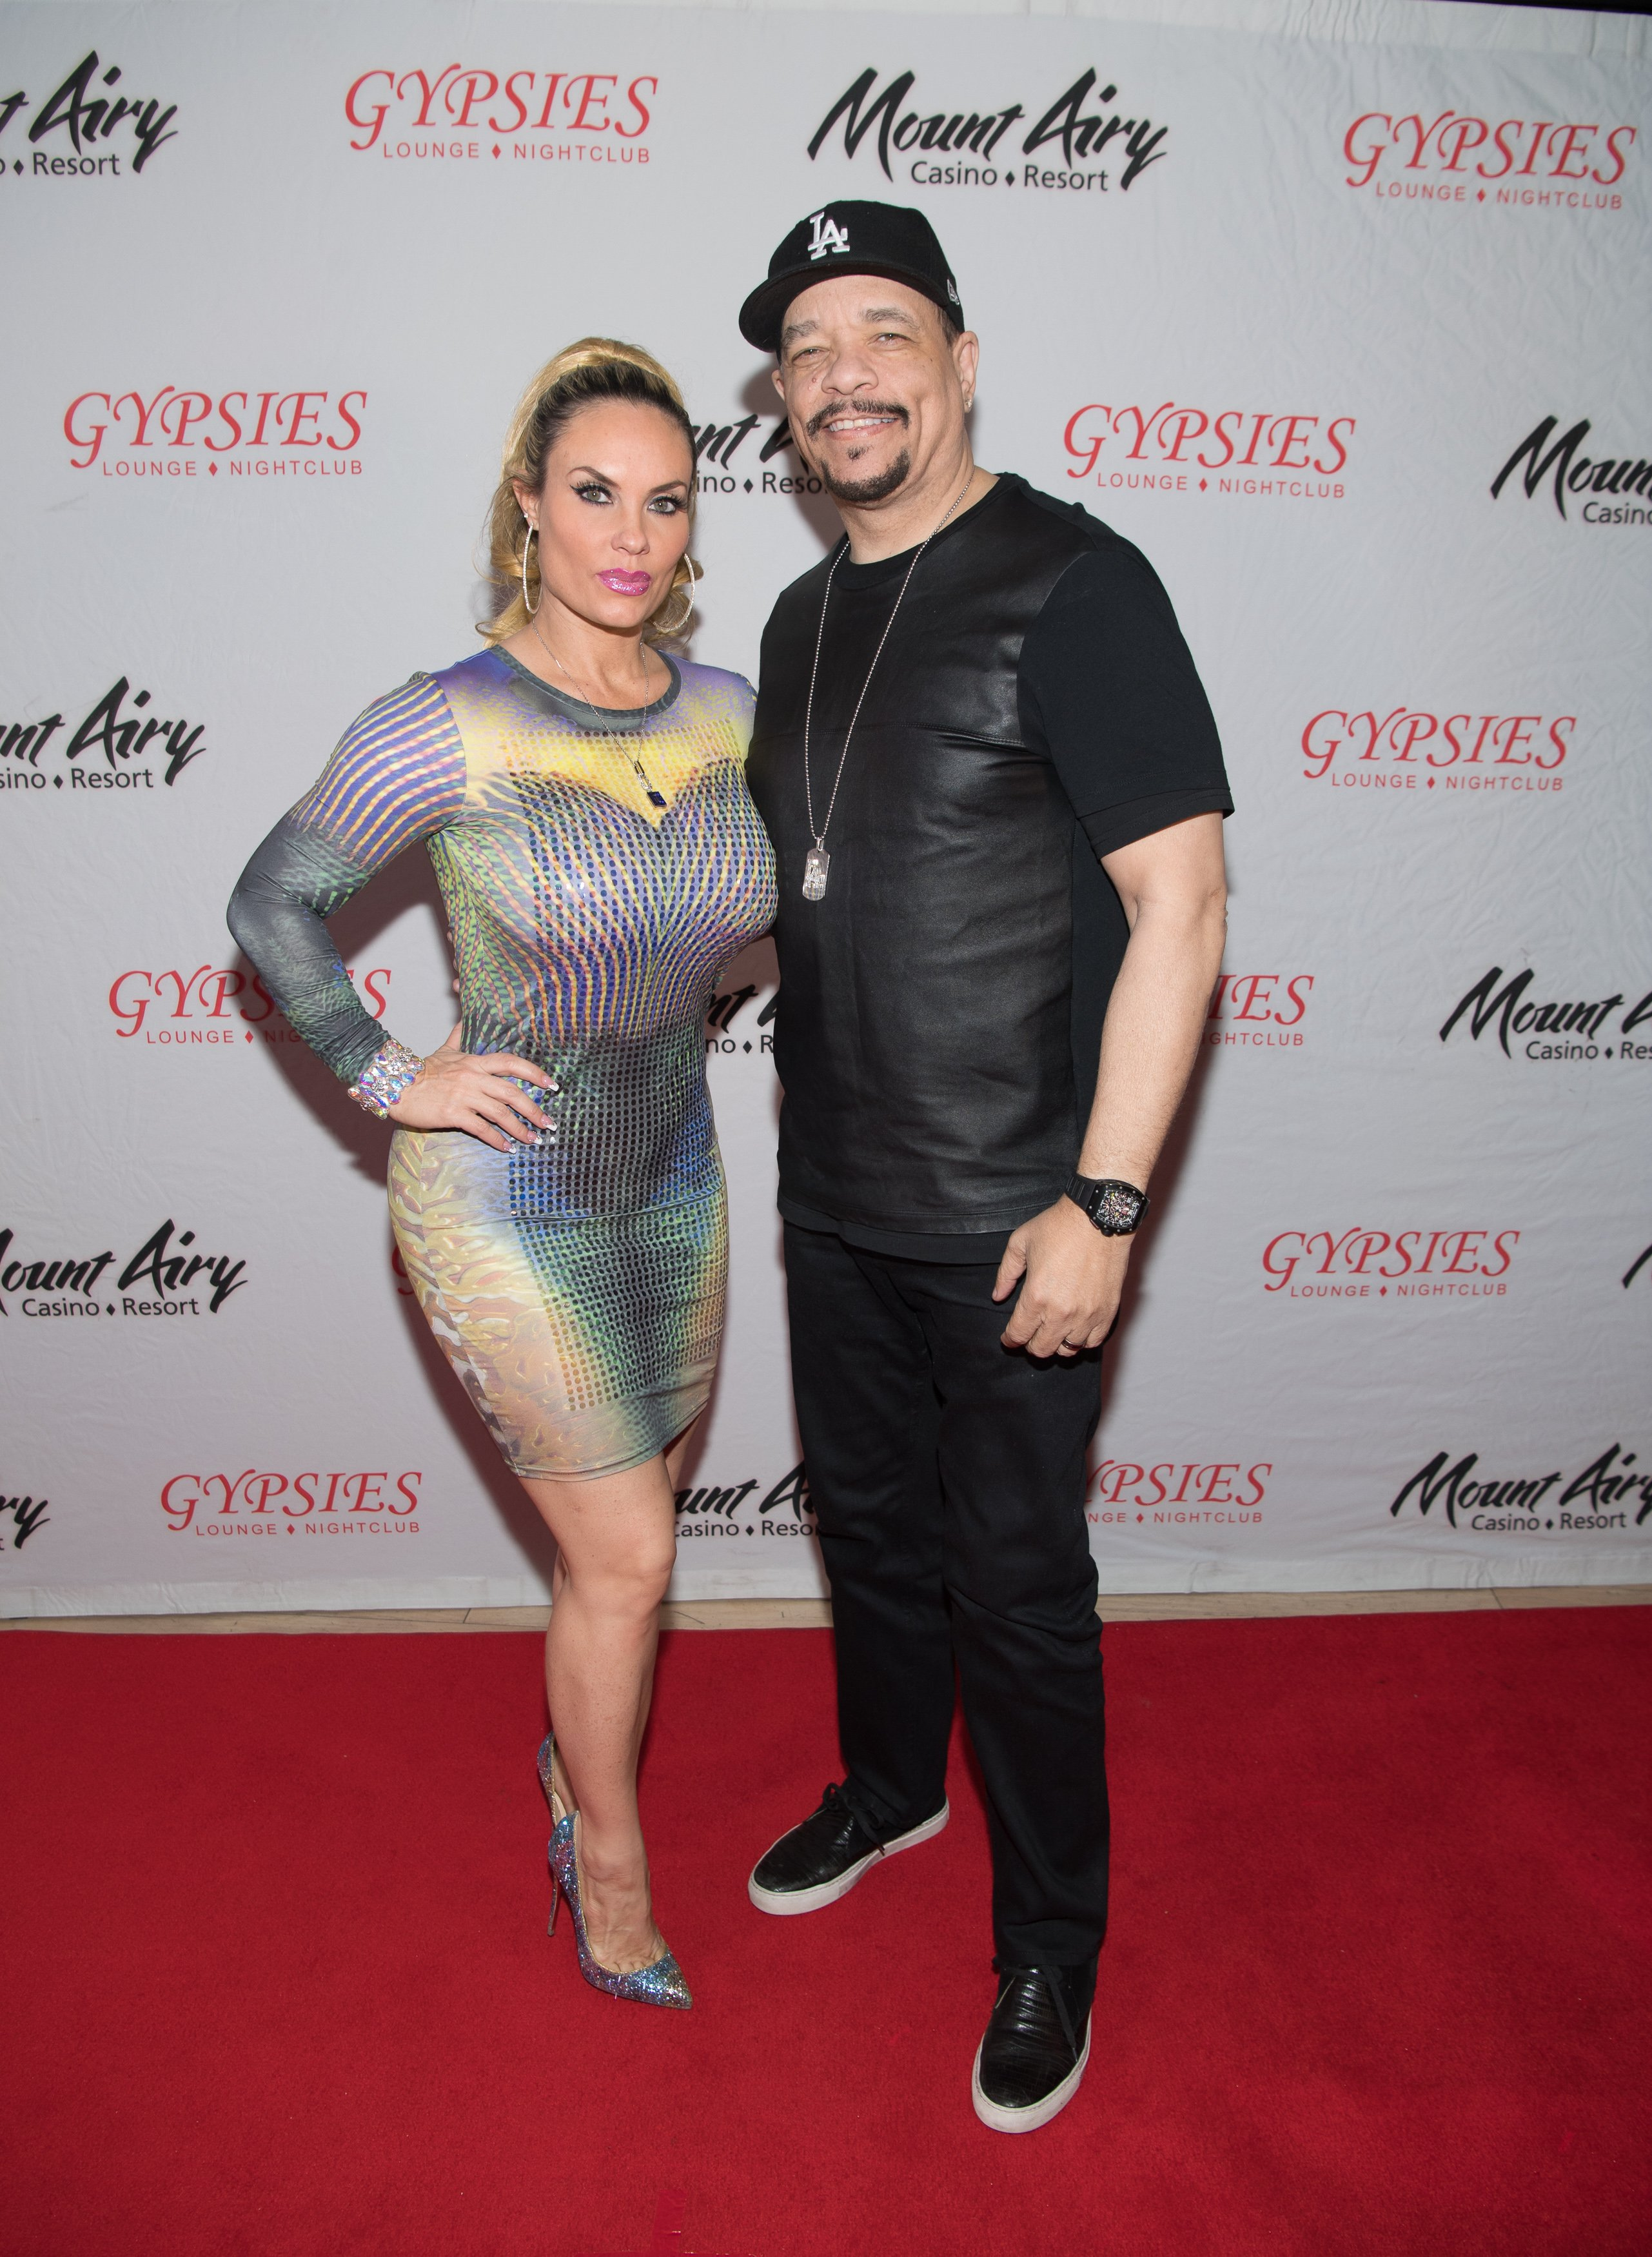 Ice-T and his wife Coco Austin appear at the Mount Airy Casino Resort in March 2017 | Photo: Getty images